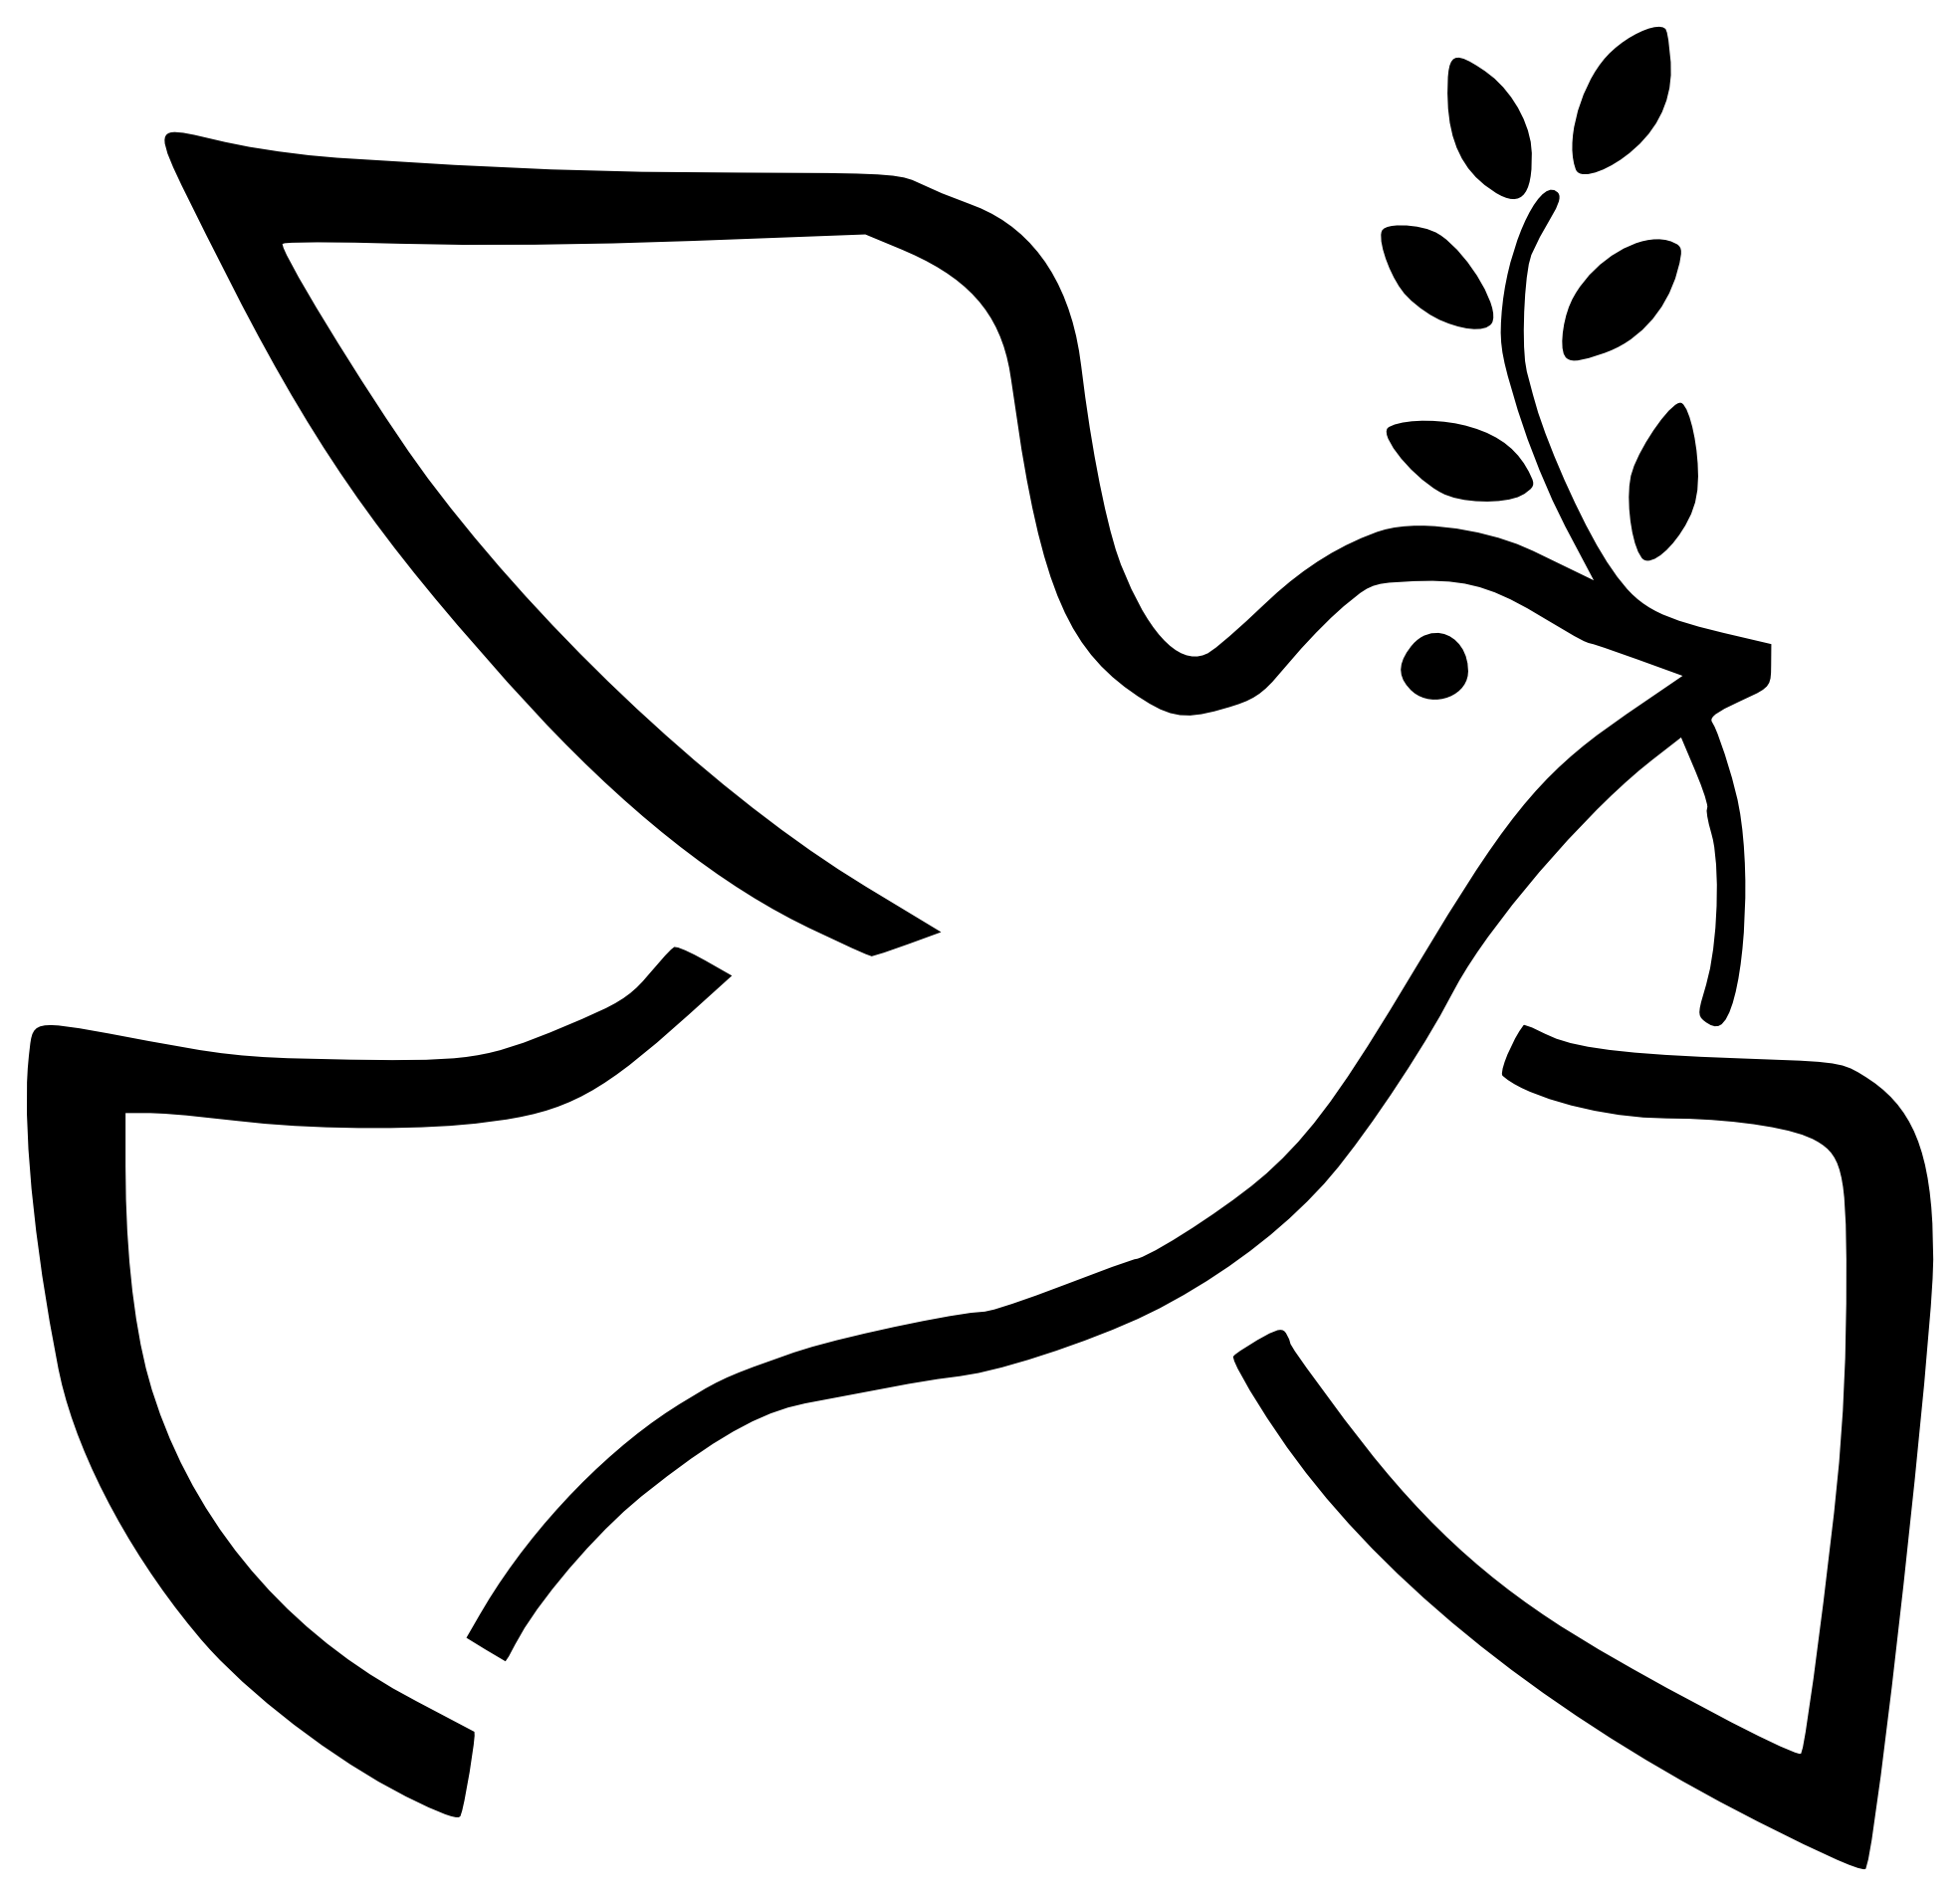 peace dove clipart clipart kid sunday school crafts pinterest rh pinterest co uk peace on earth dove clip art peace dove with olive branch clip art